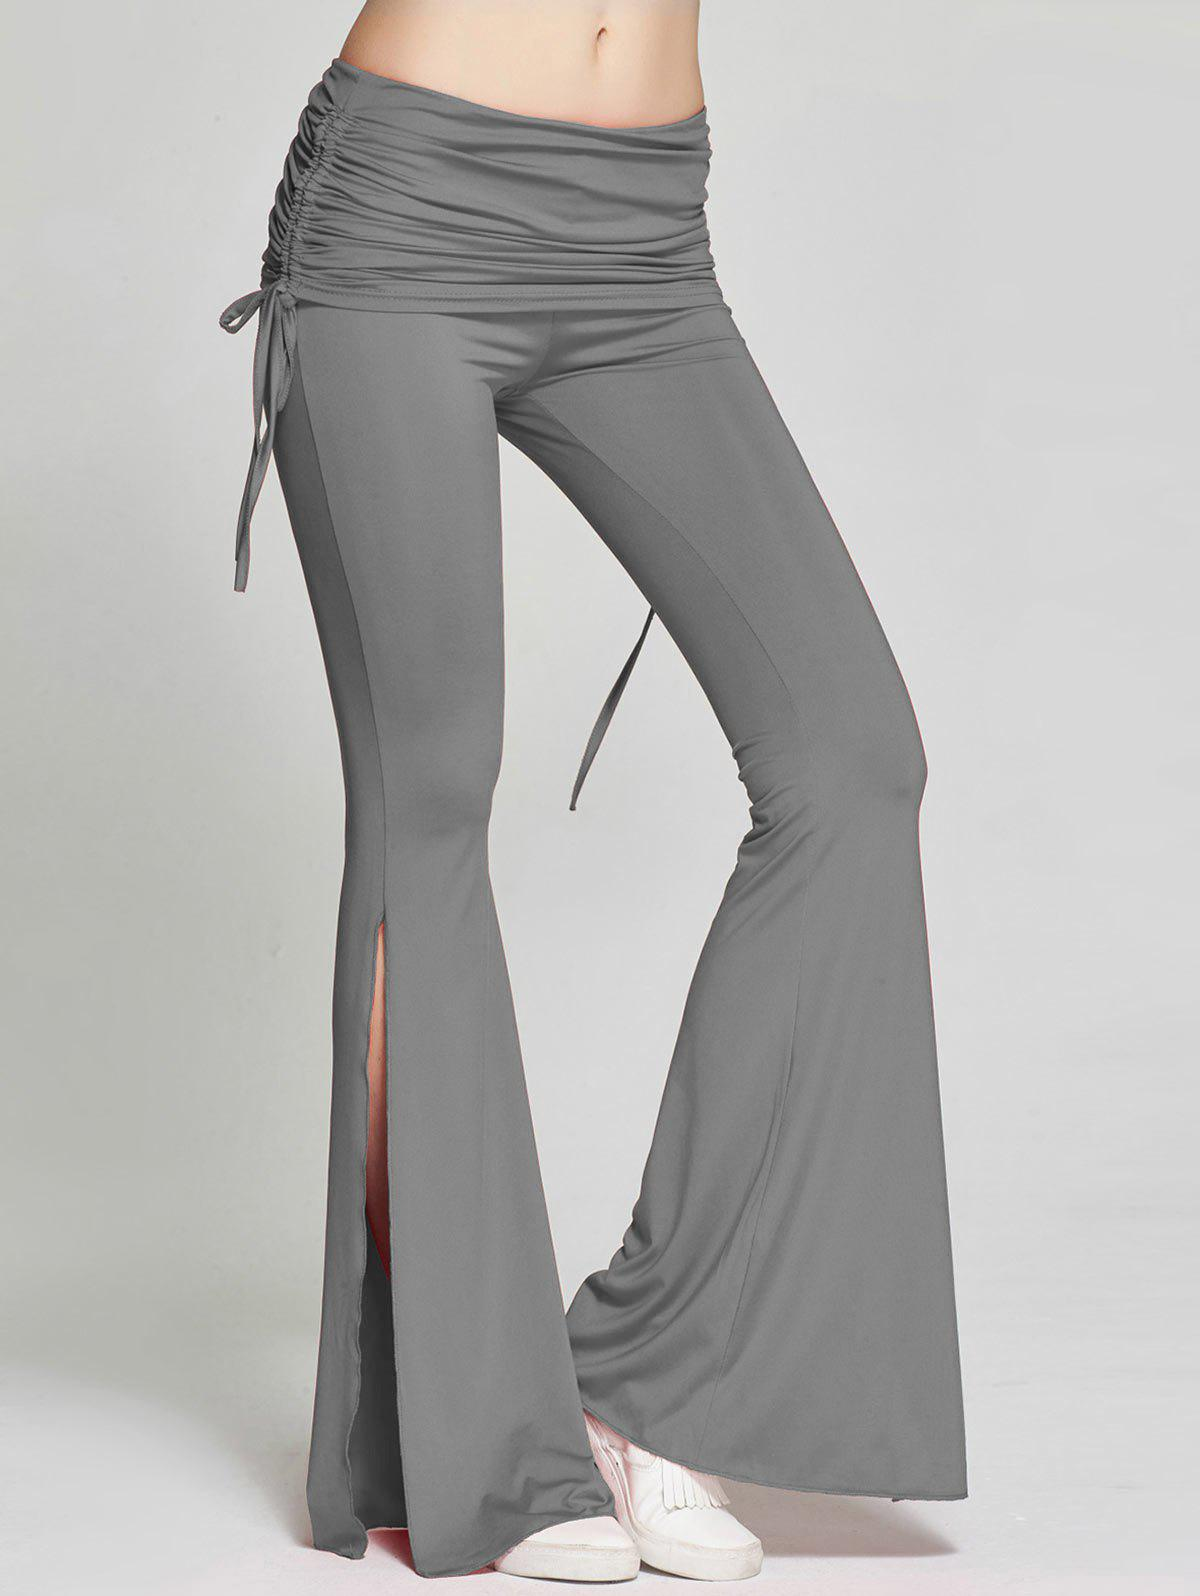 High Slit Flare Bell Bottom Yoga Pants, GRAY, L in Pants ...